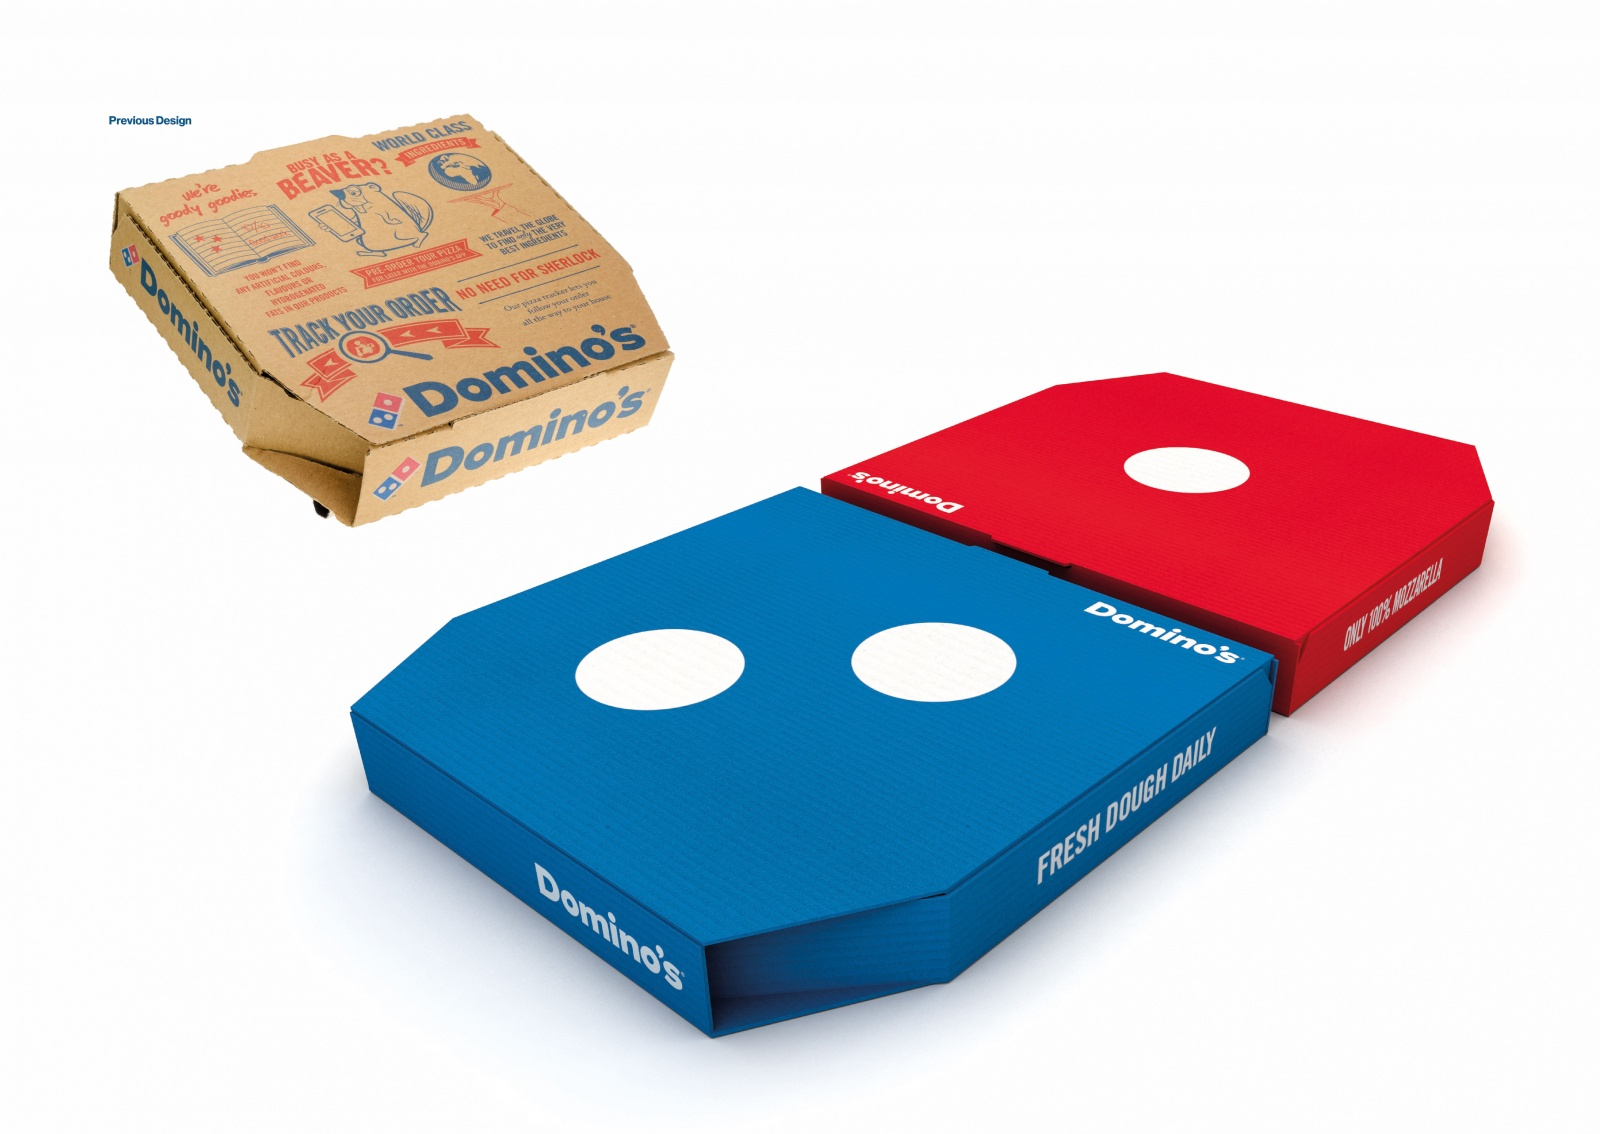 Dominos-Before-and-After-1600x1134.jpg